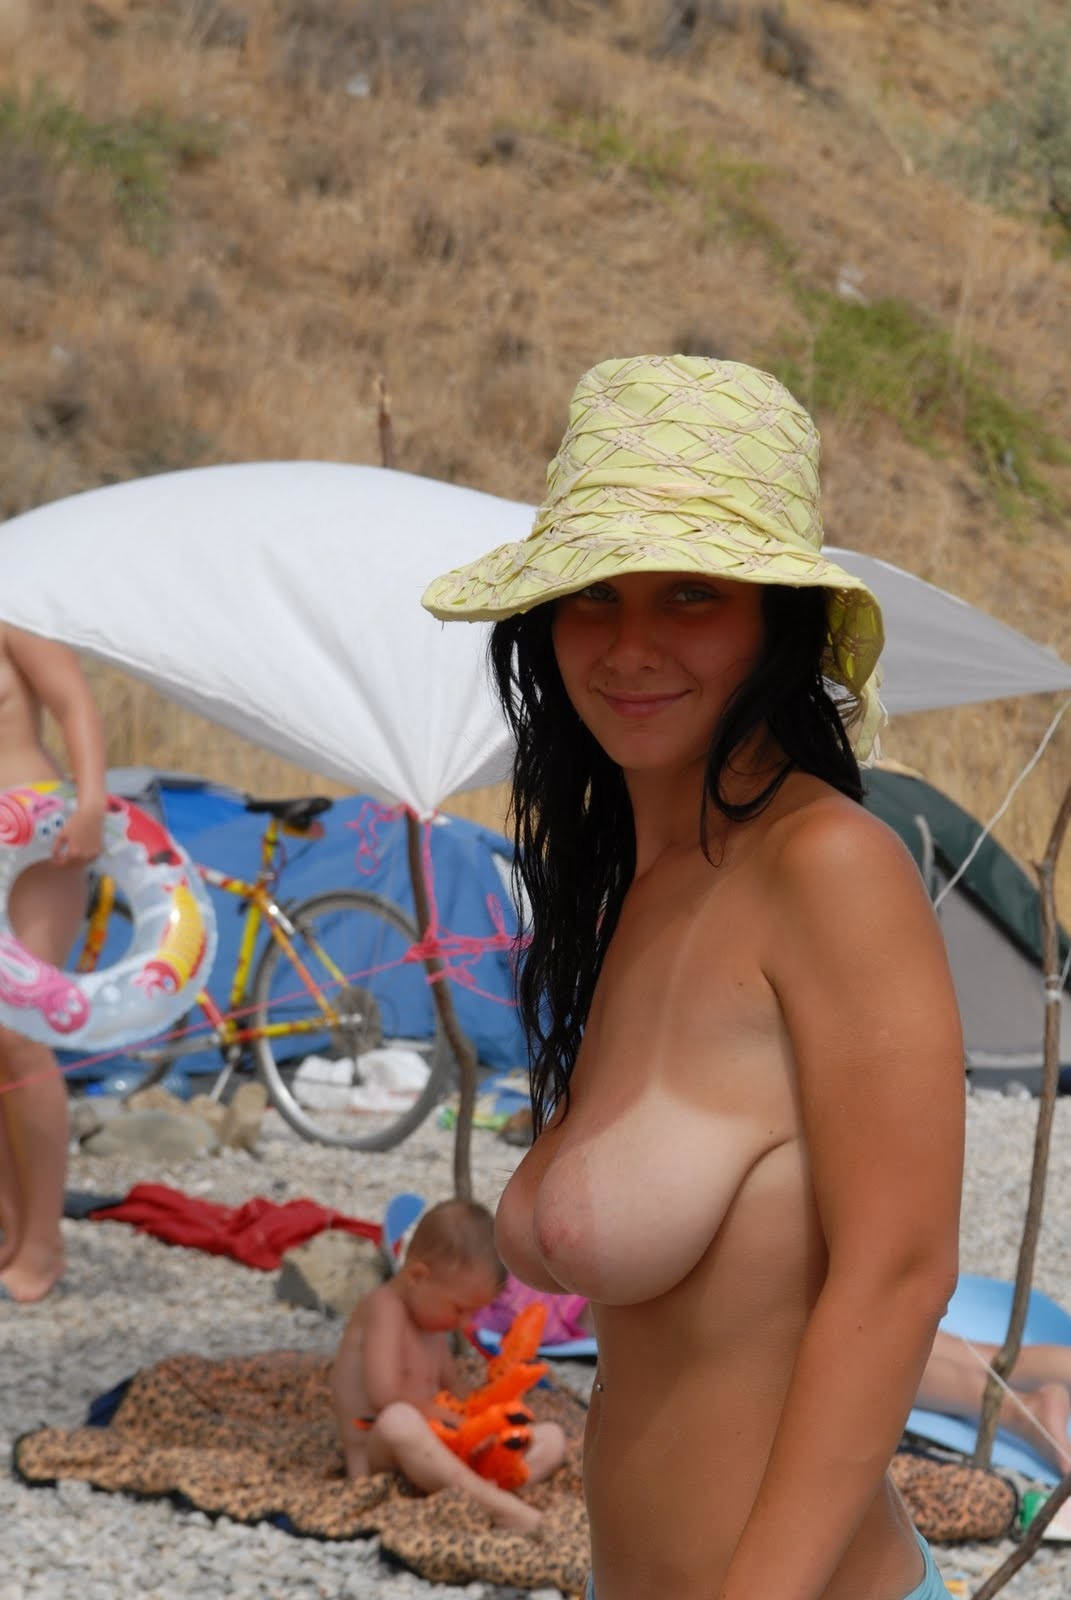 nudists-girls-boobs-beach-topless-mix-vol7-41